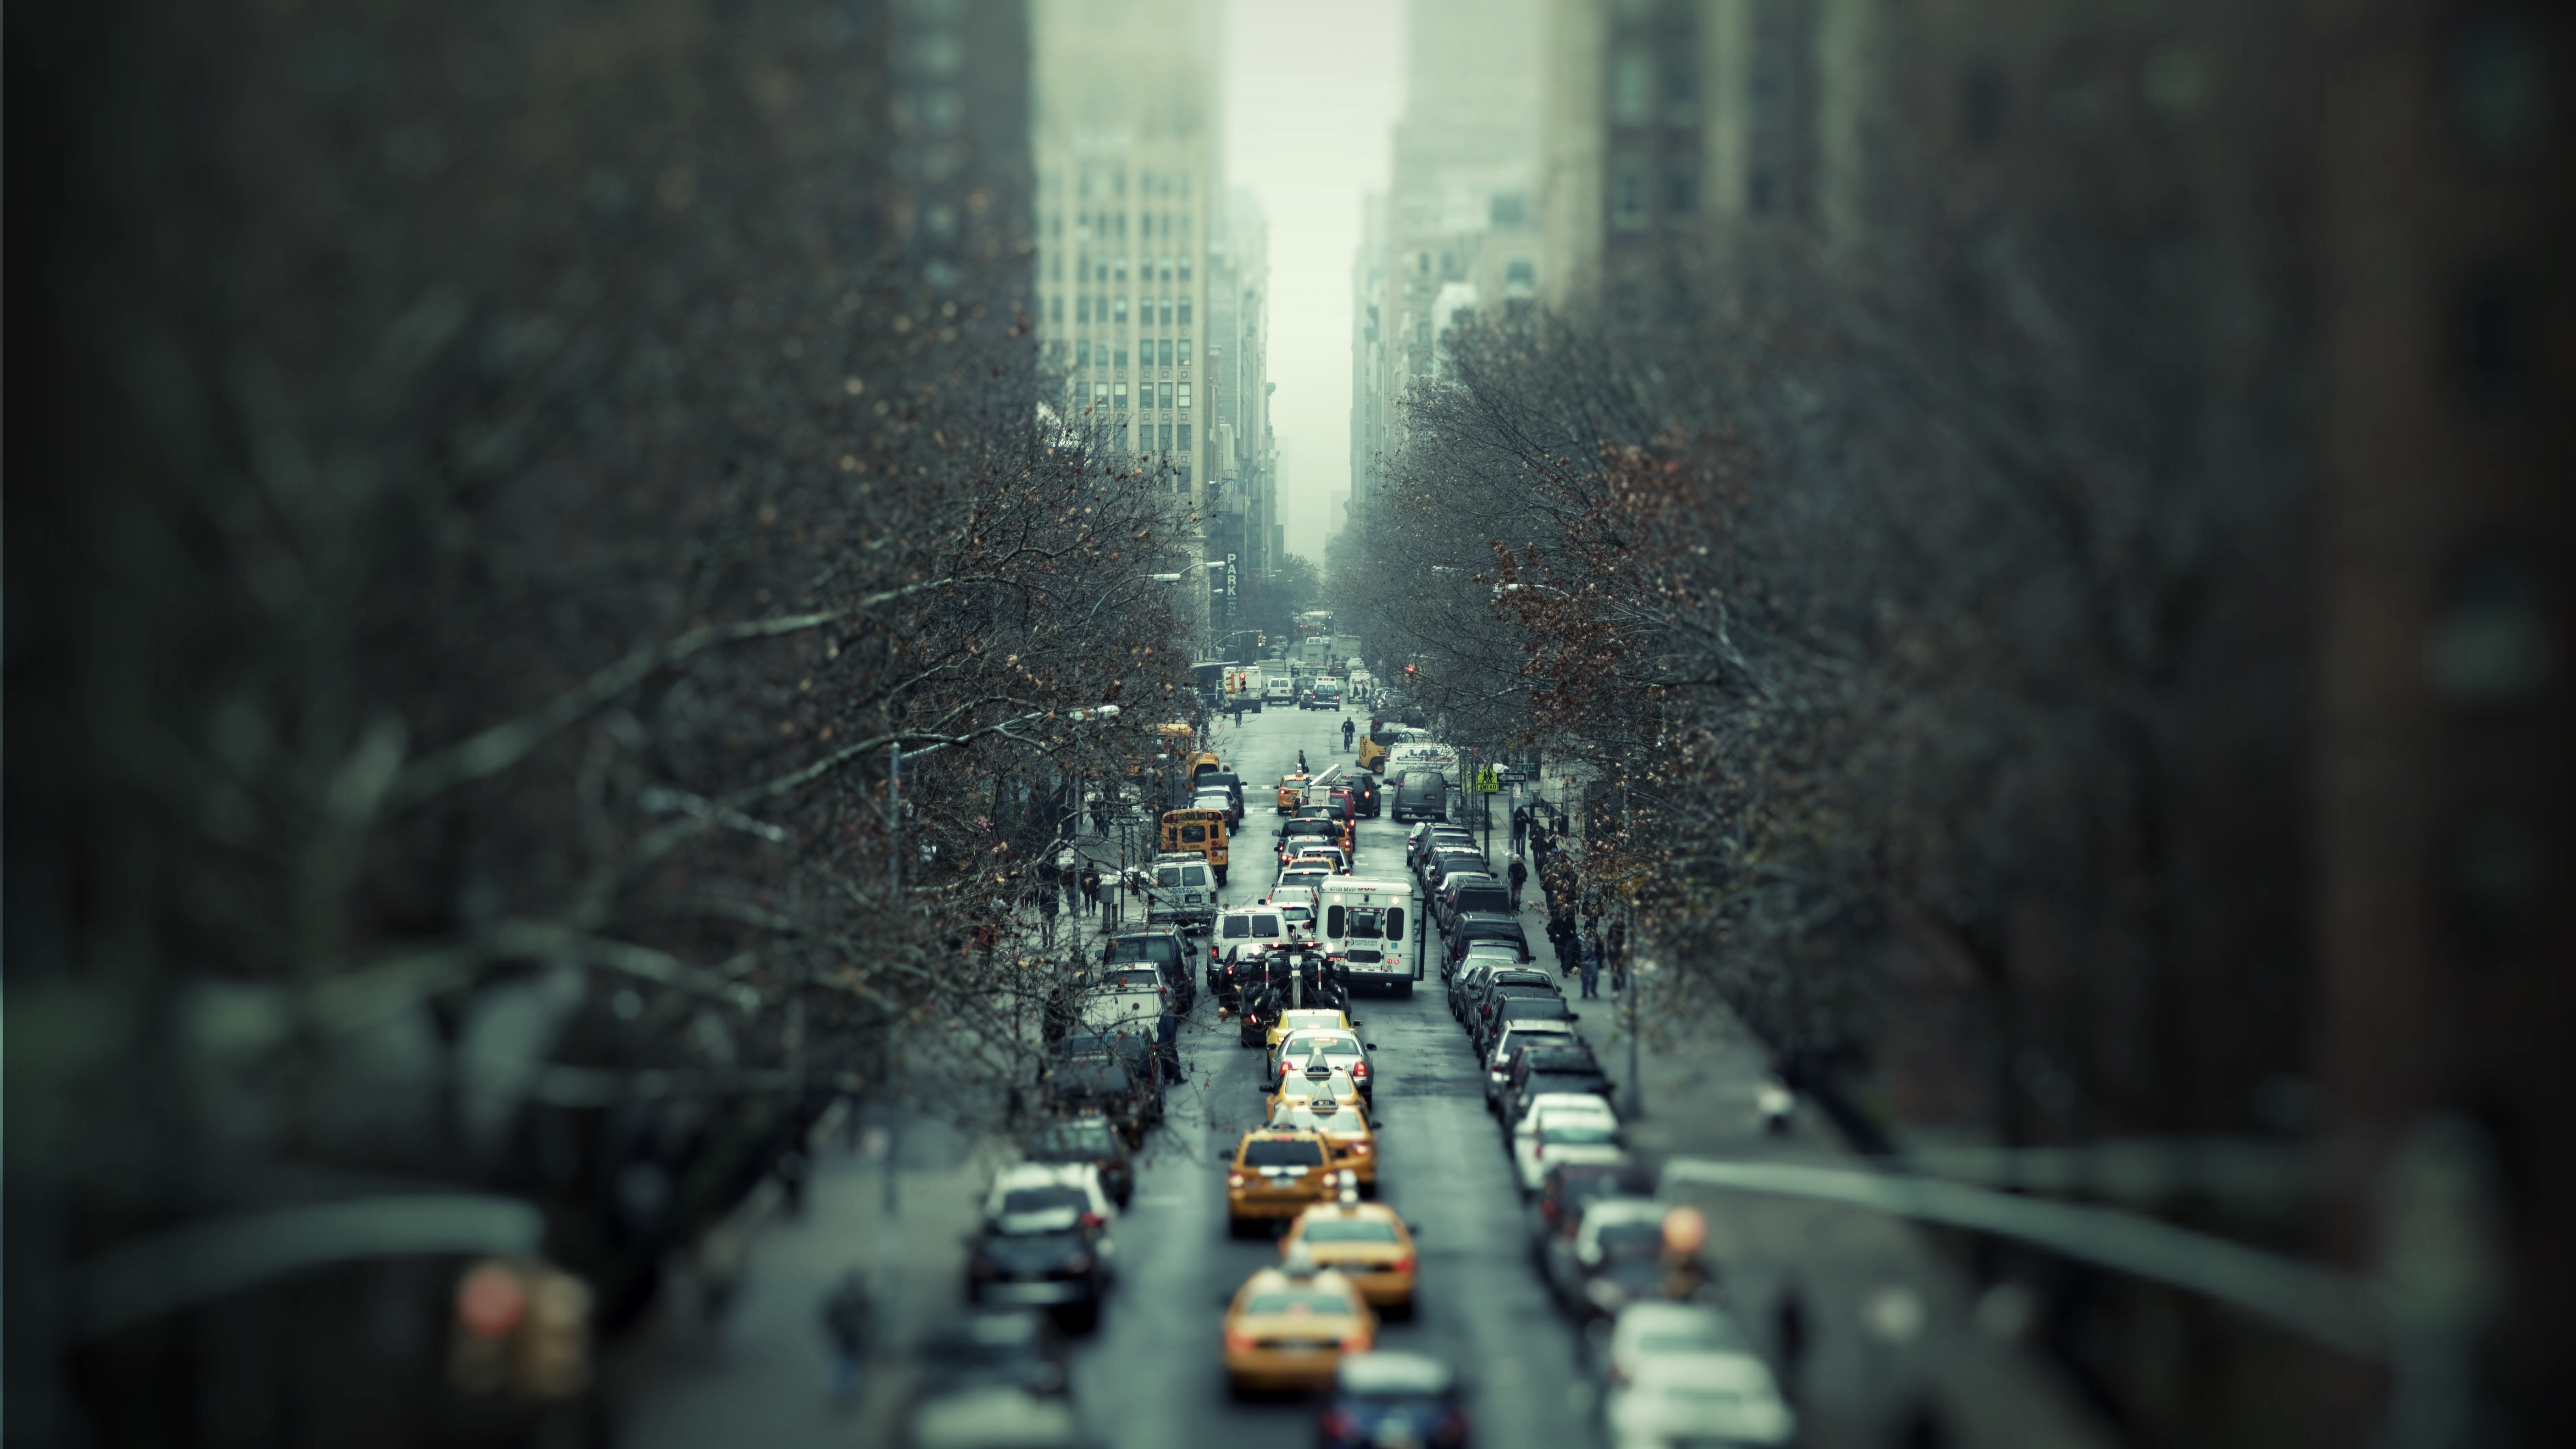 selective focus photography of cars during daytime